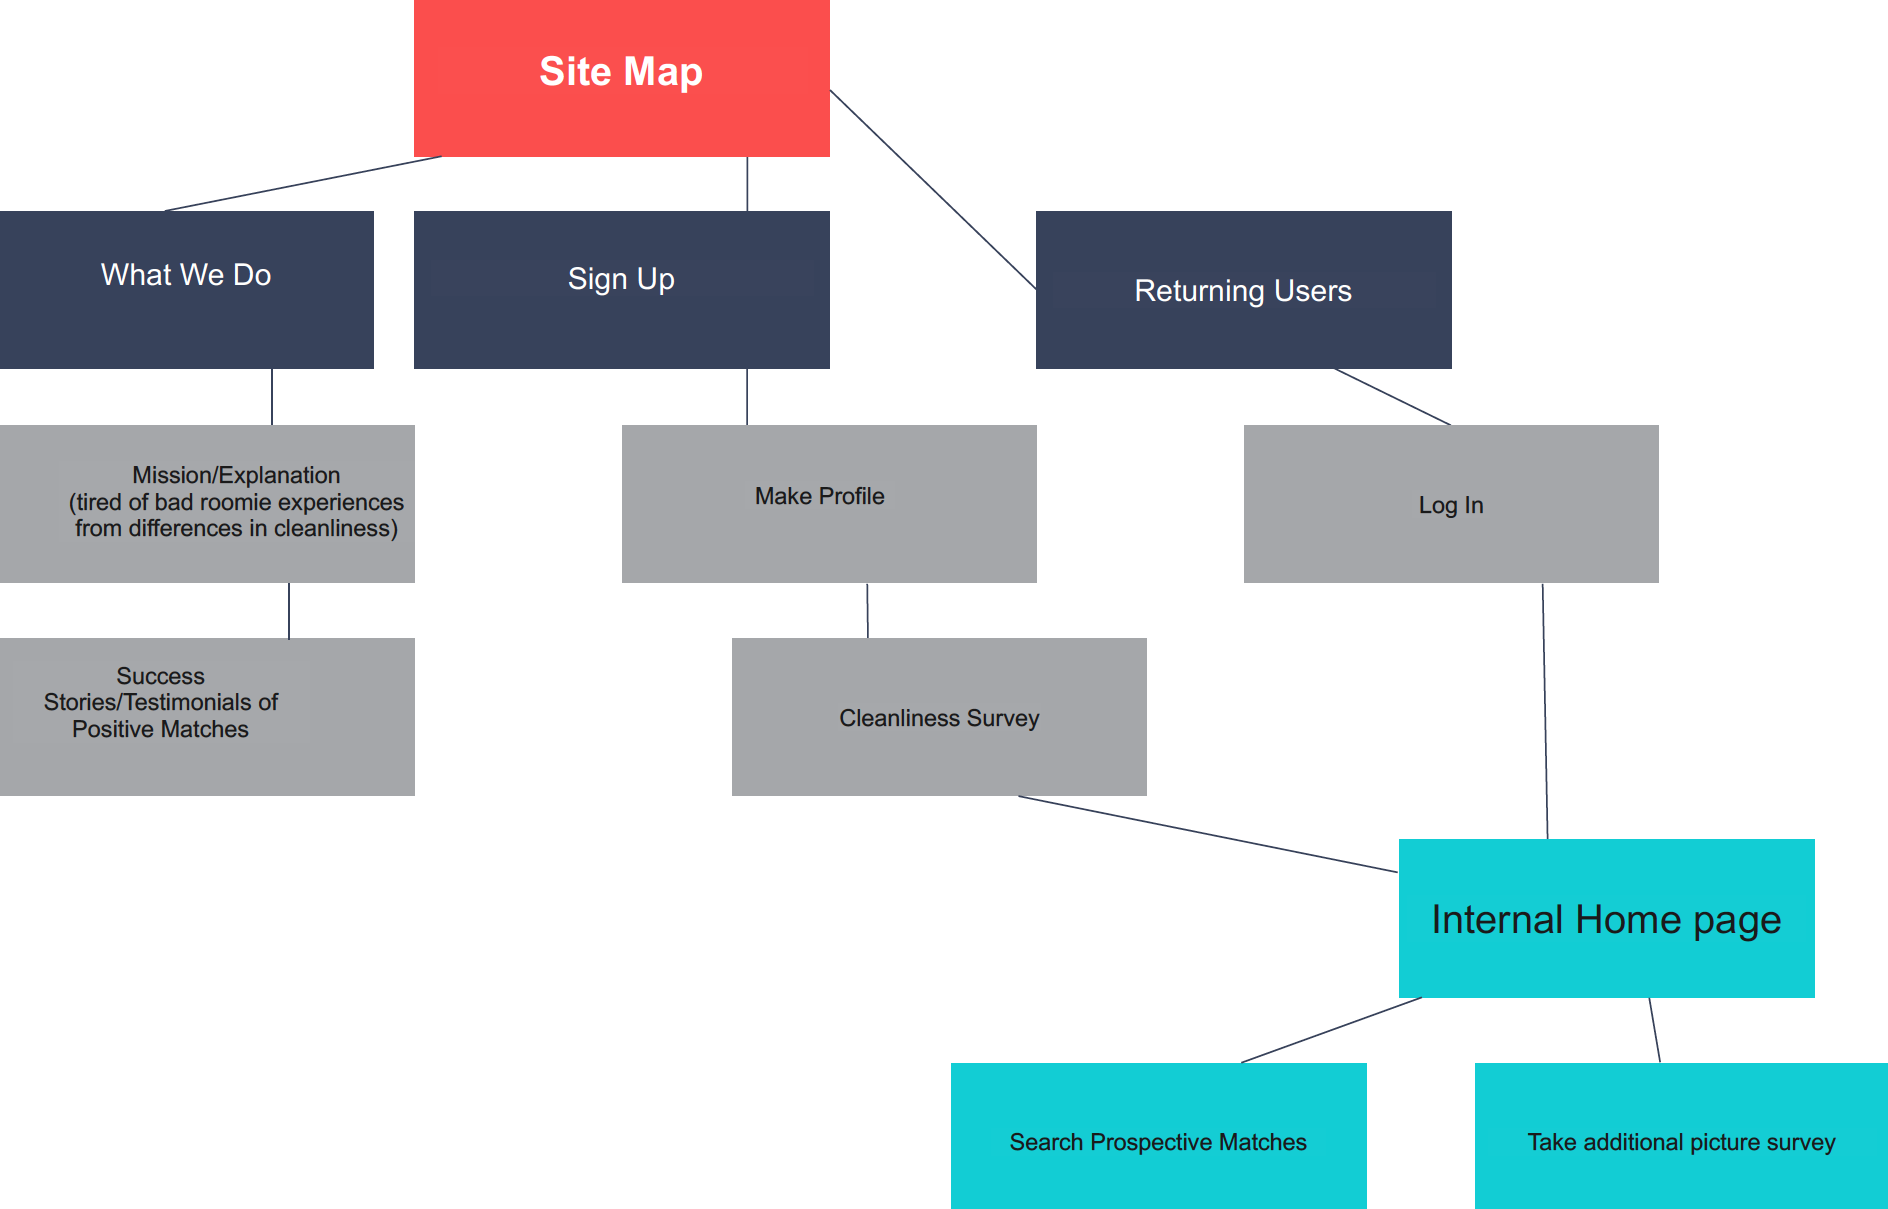 - The main difference in a site map would be for new users vs. returning users.